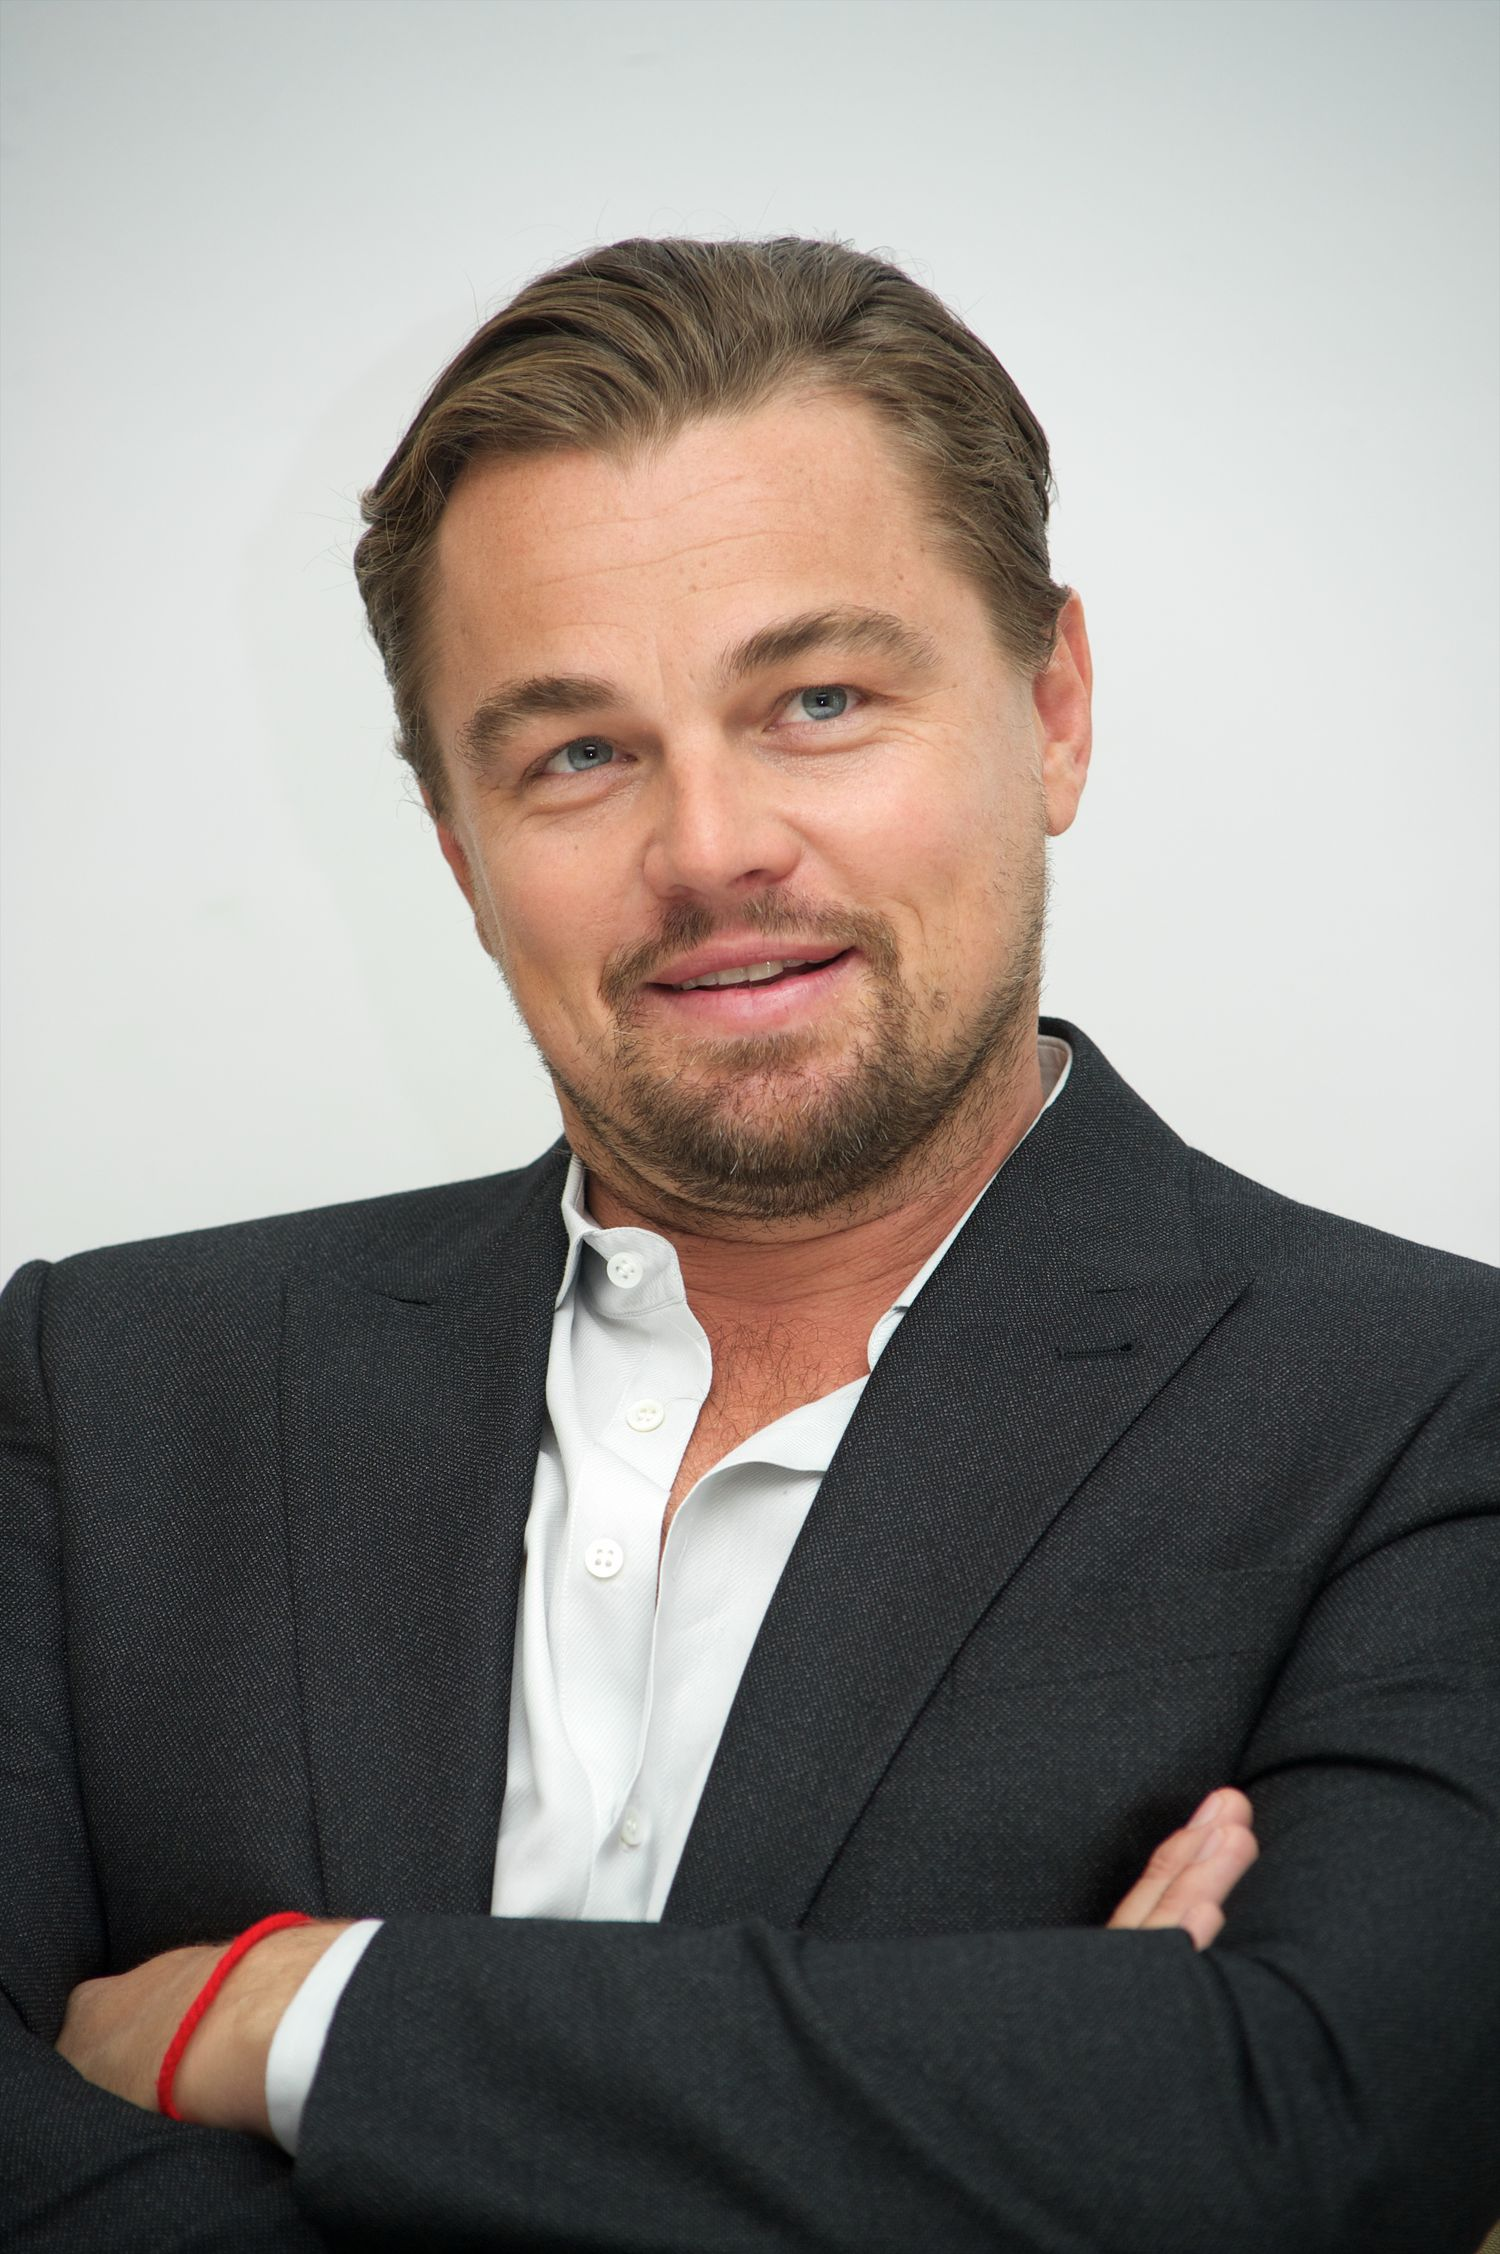 Leonardo DiCaprio photo #749140